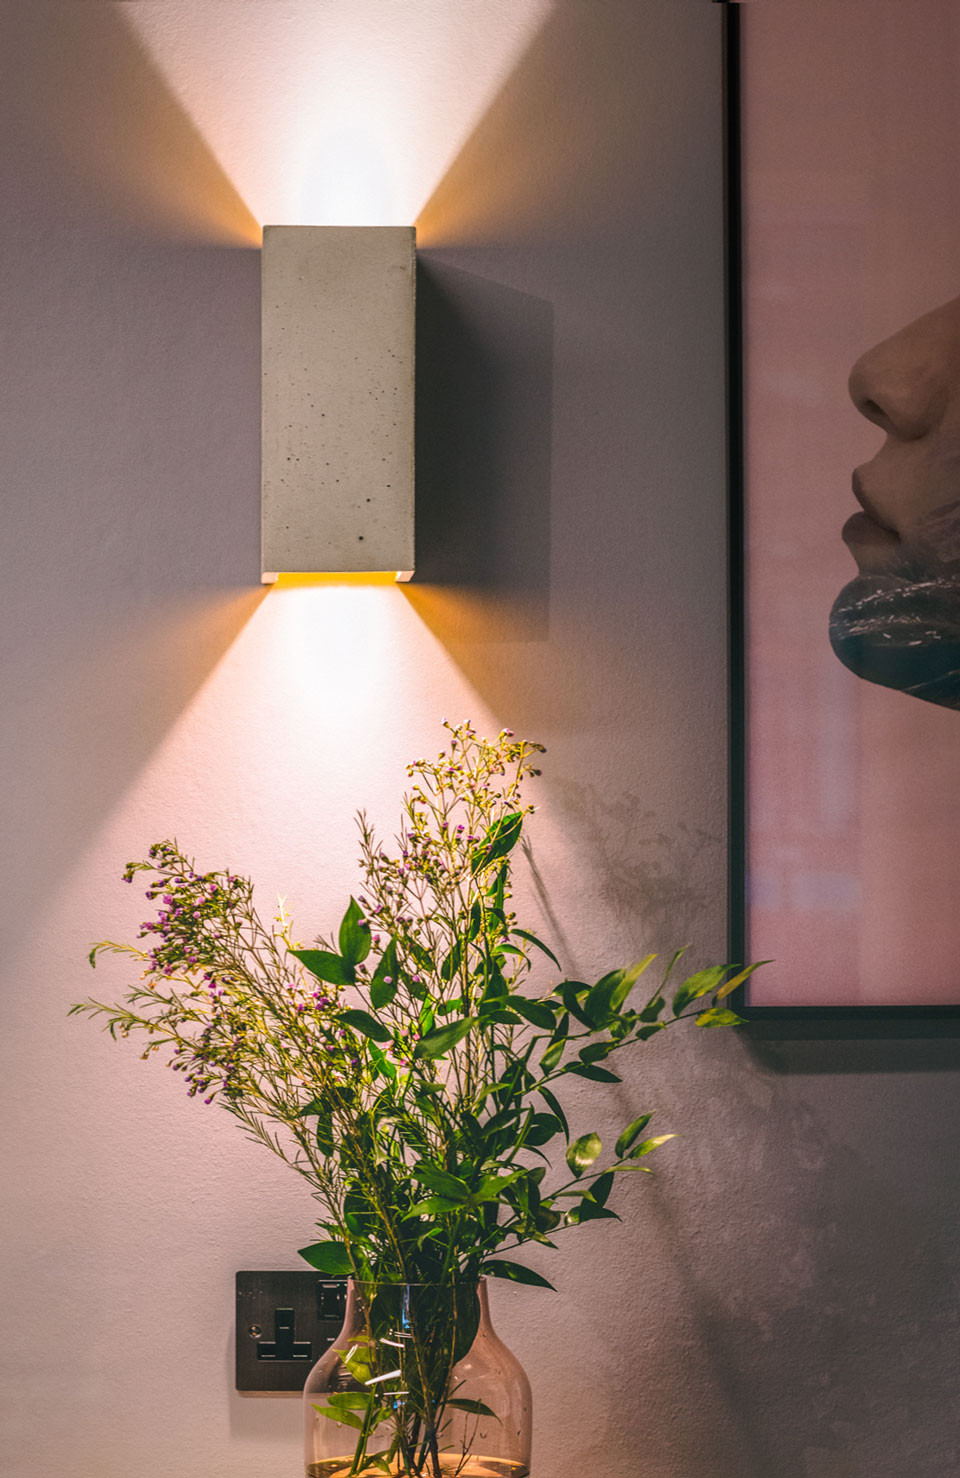 a picture of wall light within a beauty room with light shining upwards and downwards from the light